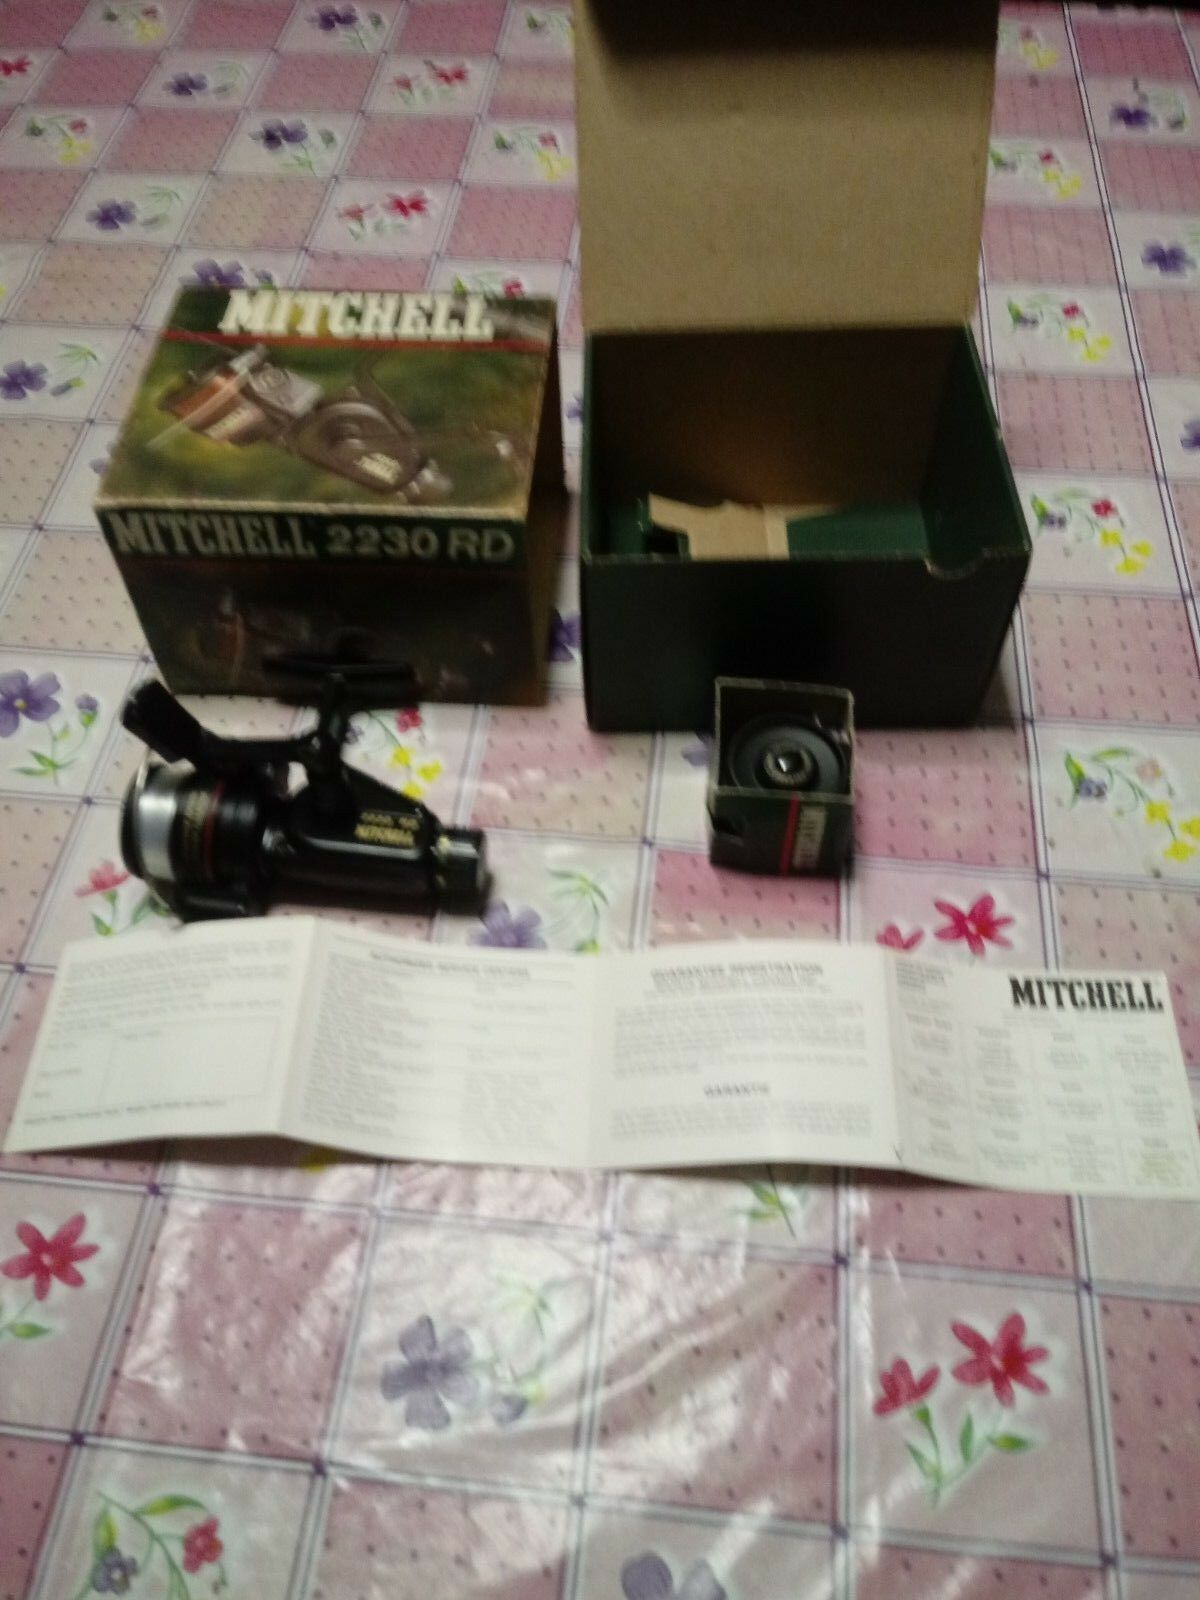 Mulinello mitchell 2230 rd moulinet reel fishing rolle in box